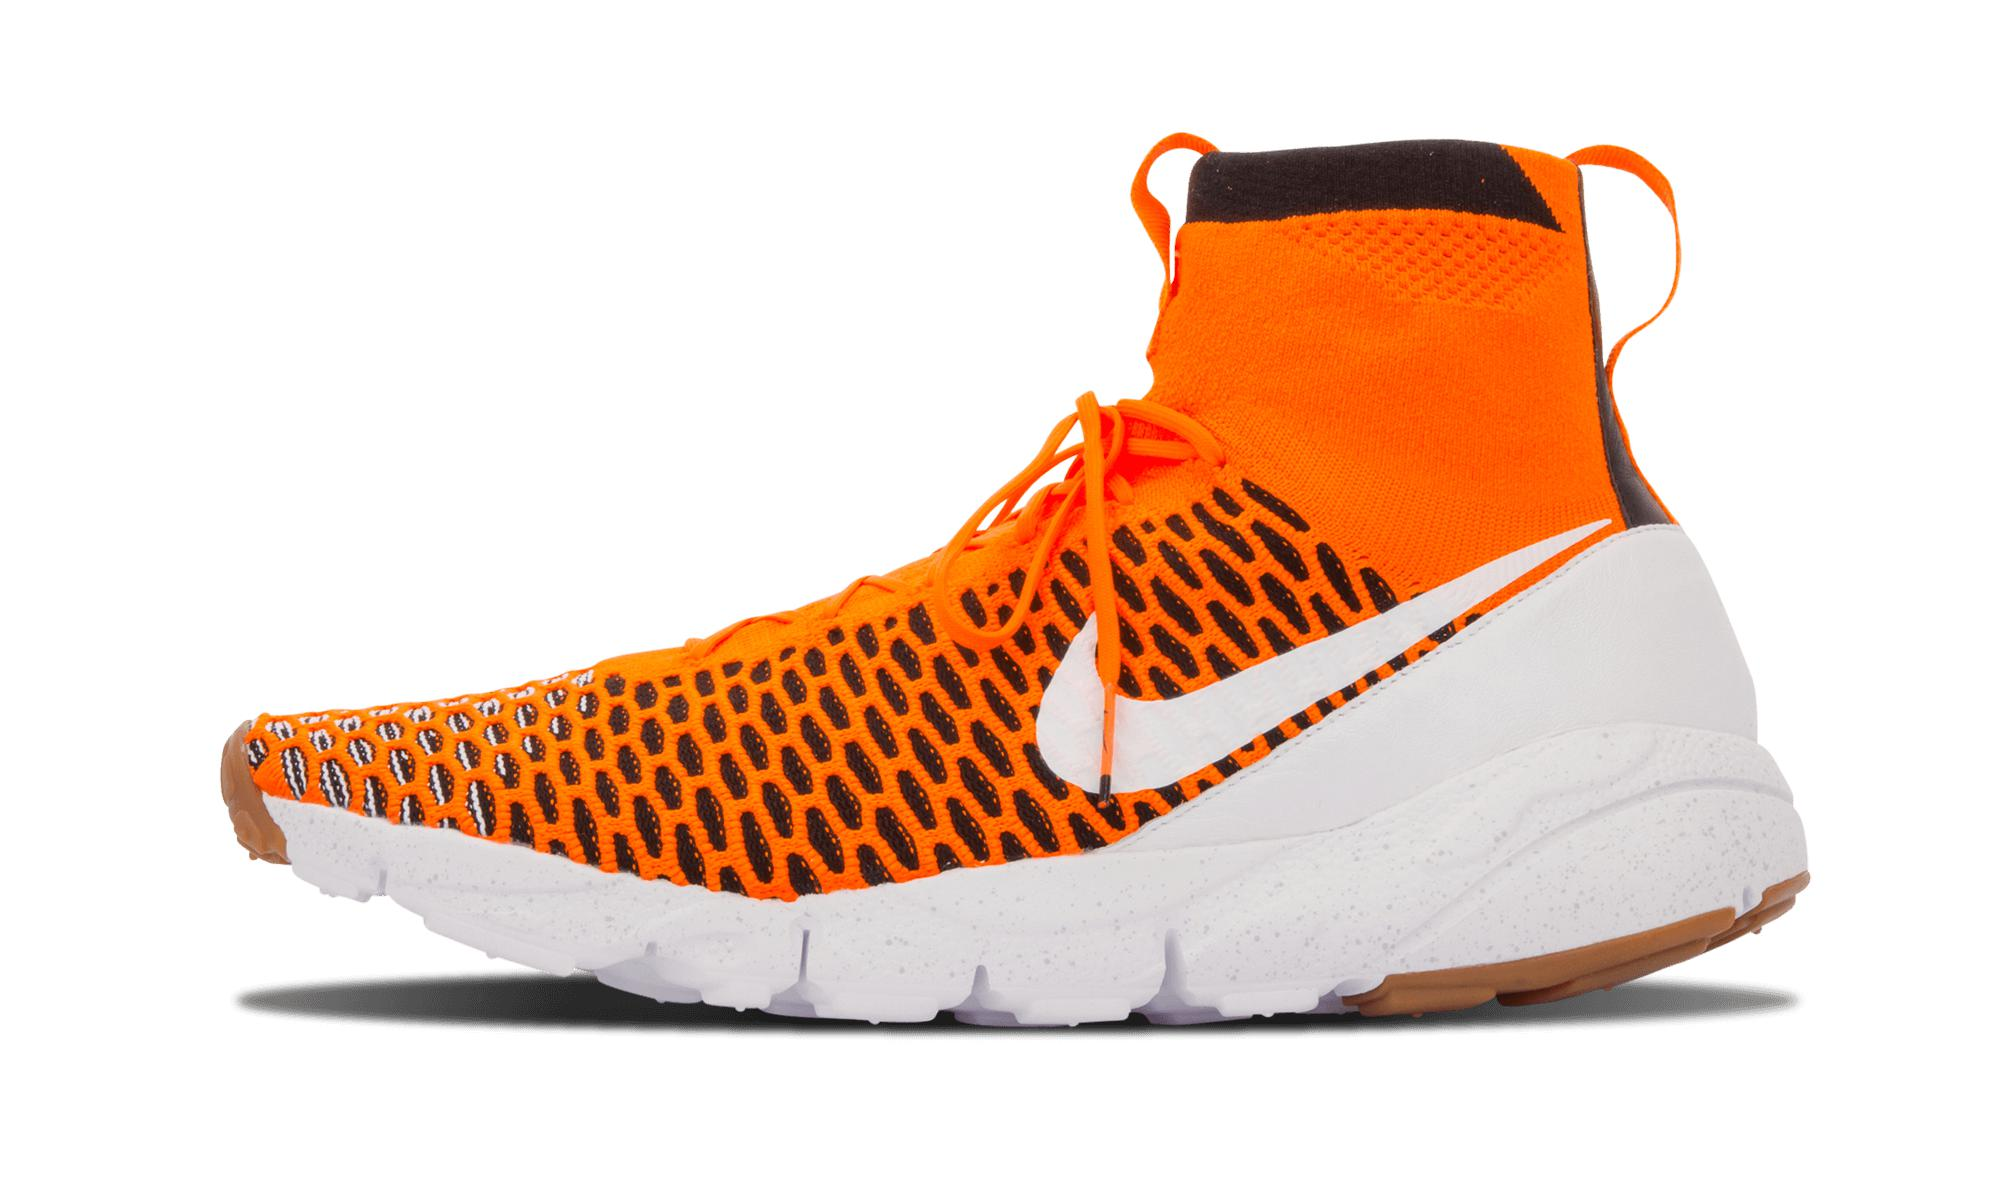 0de240063eea Lyst - Nike Air Footscape Magista Sp in Orange for Men - Save 29%